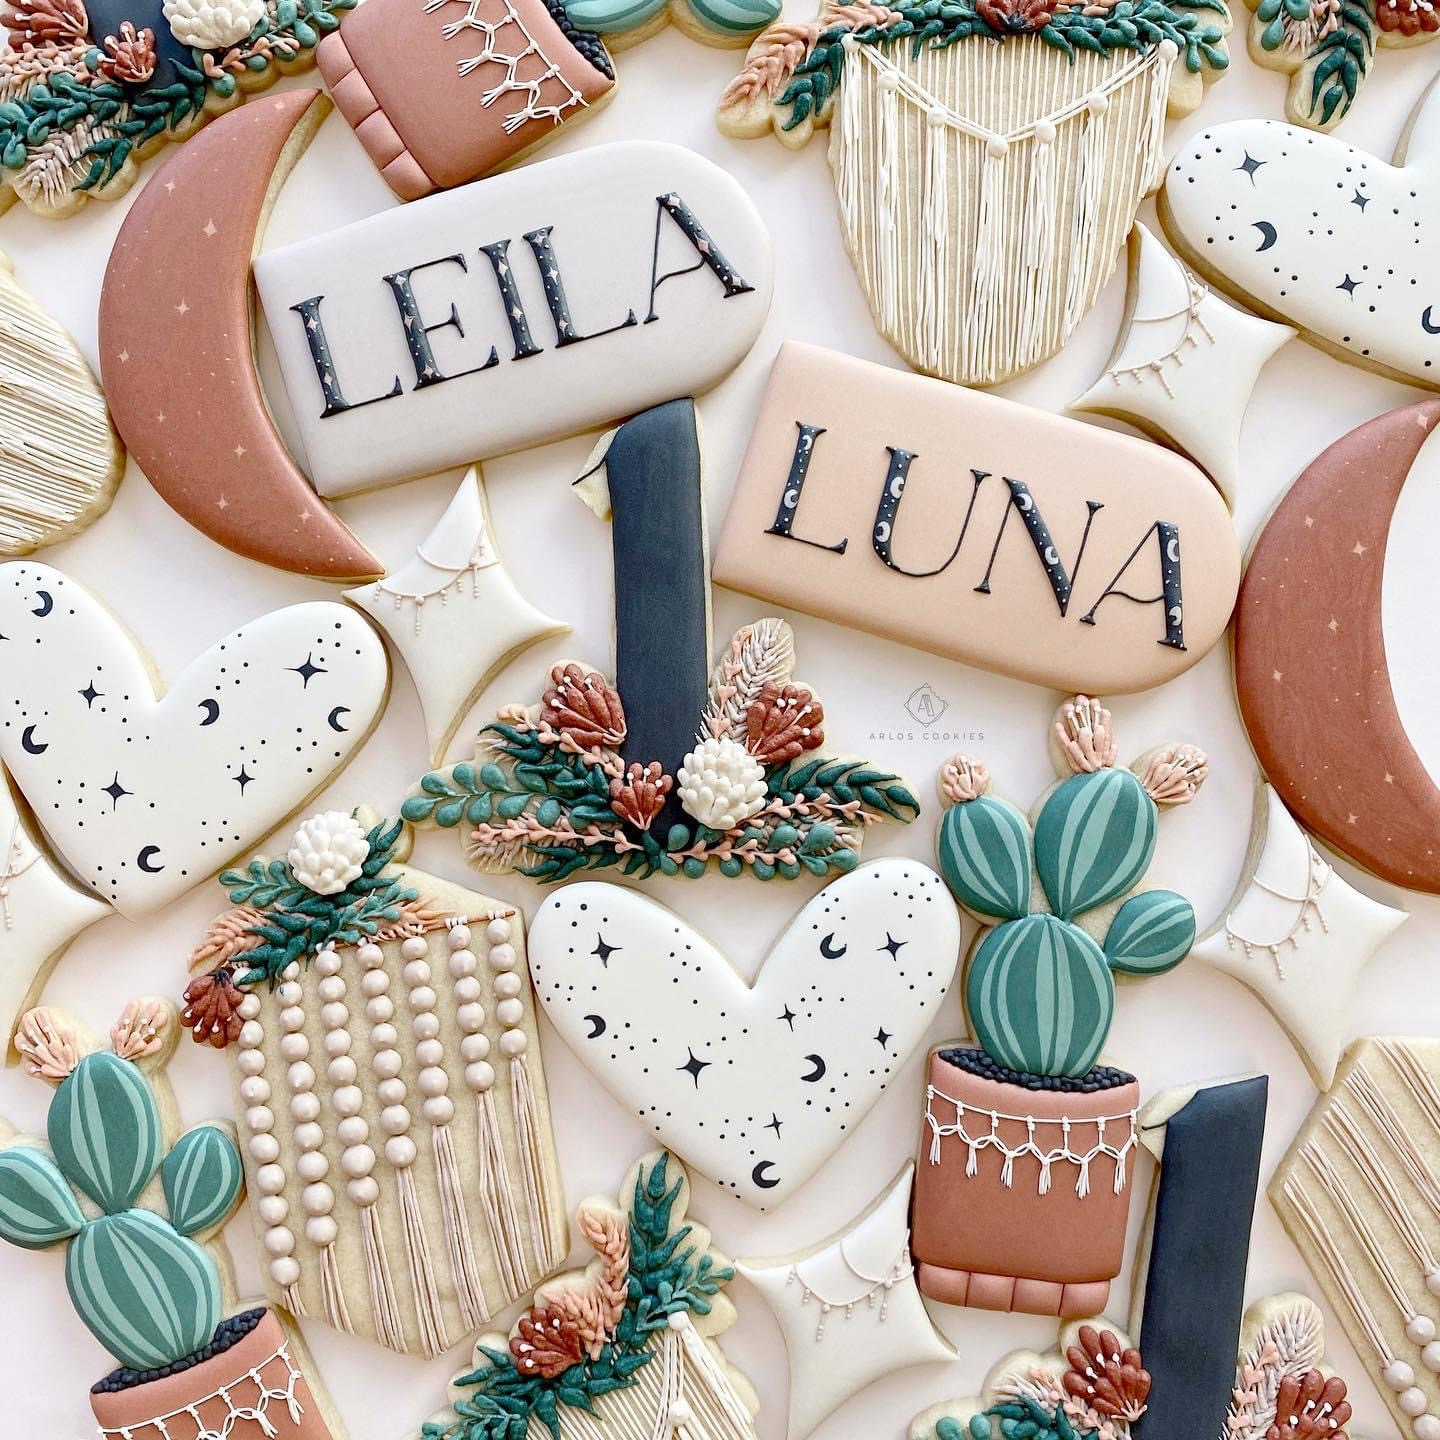 Bohemian-style cookies decorated as hearts, stars, moons, cactuses, macrame hangings, and pendant with names.